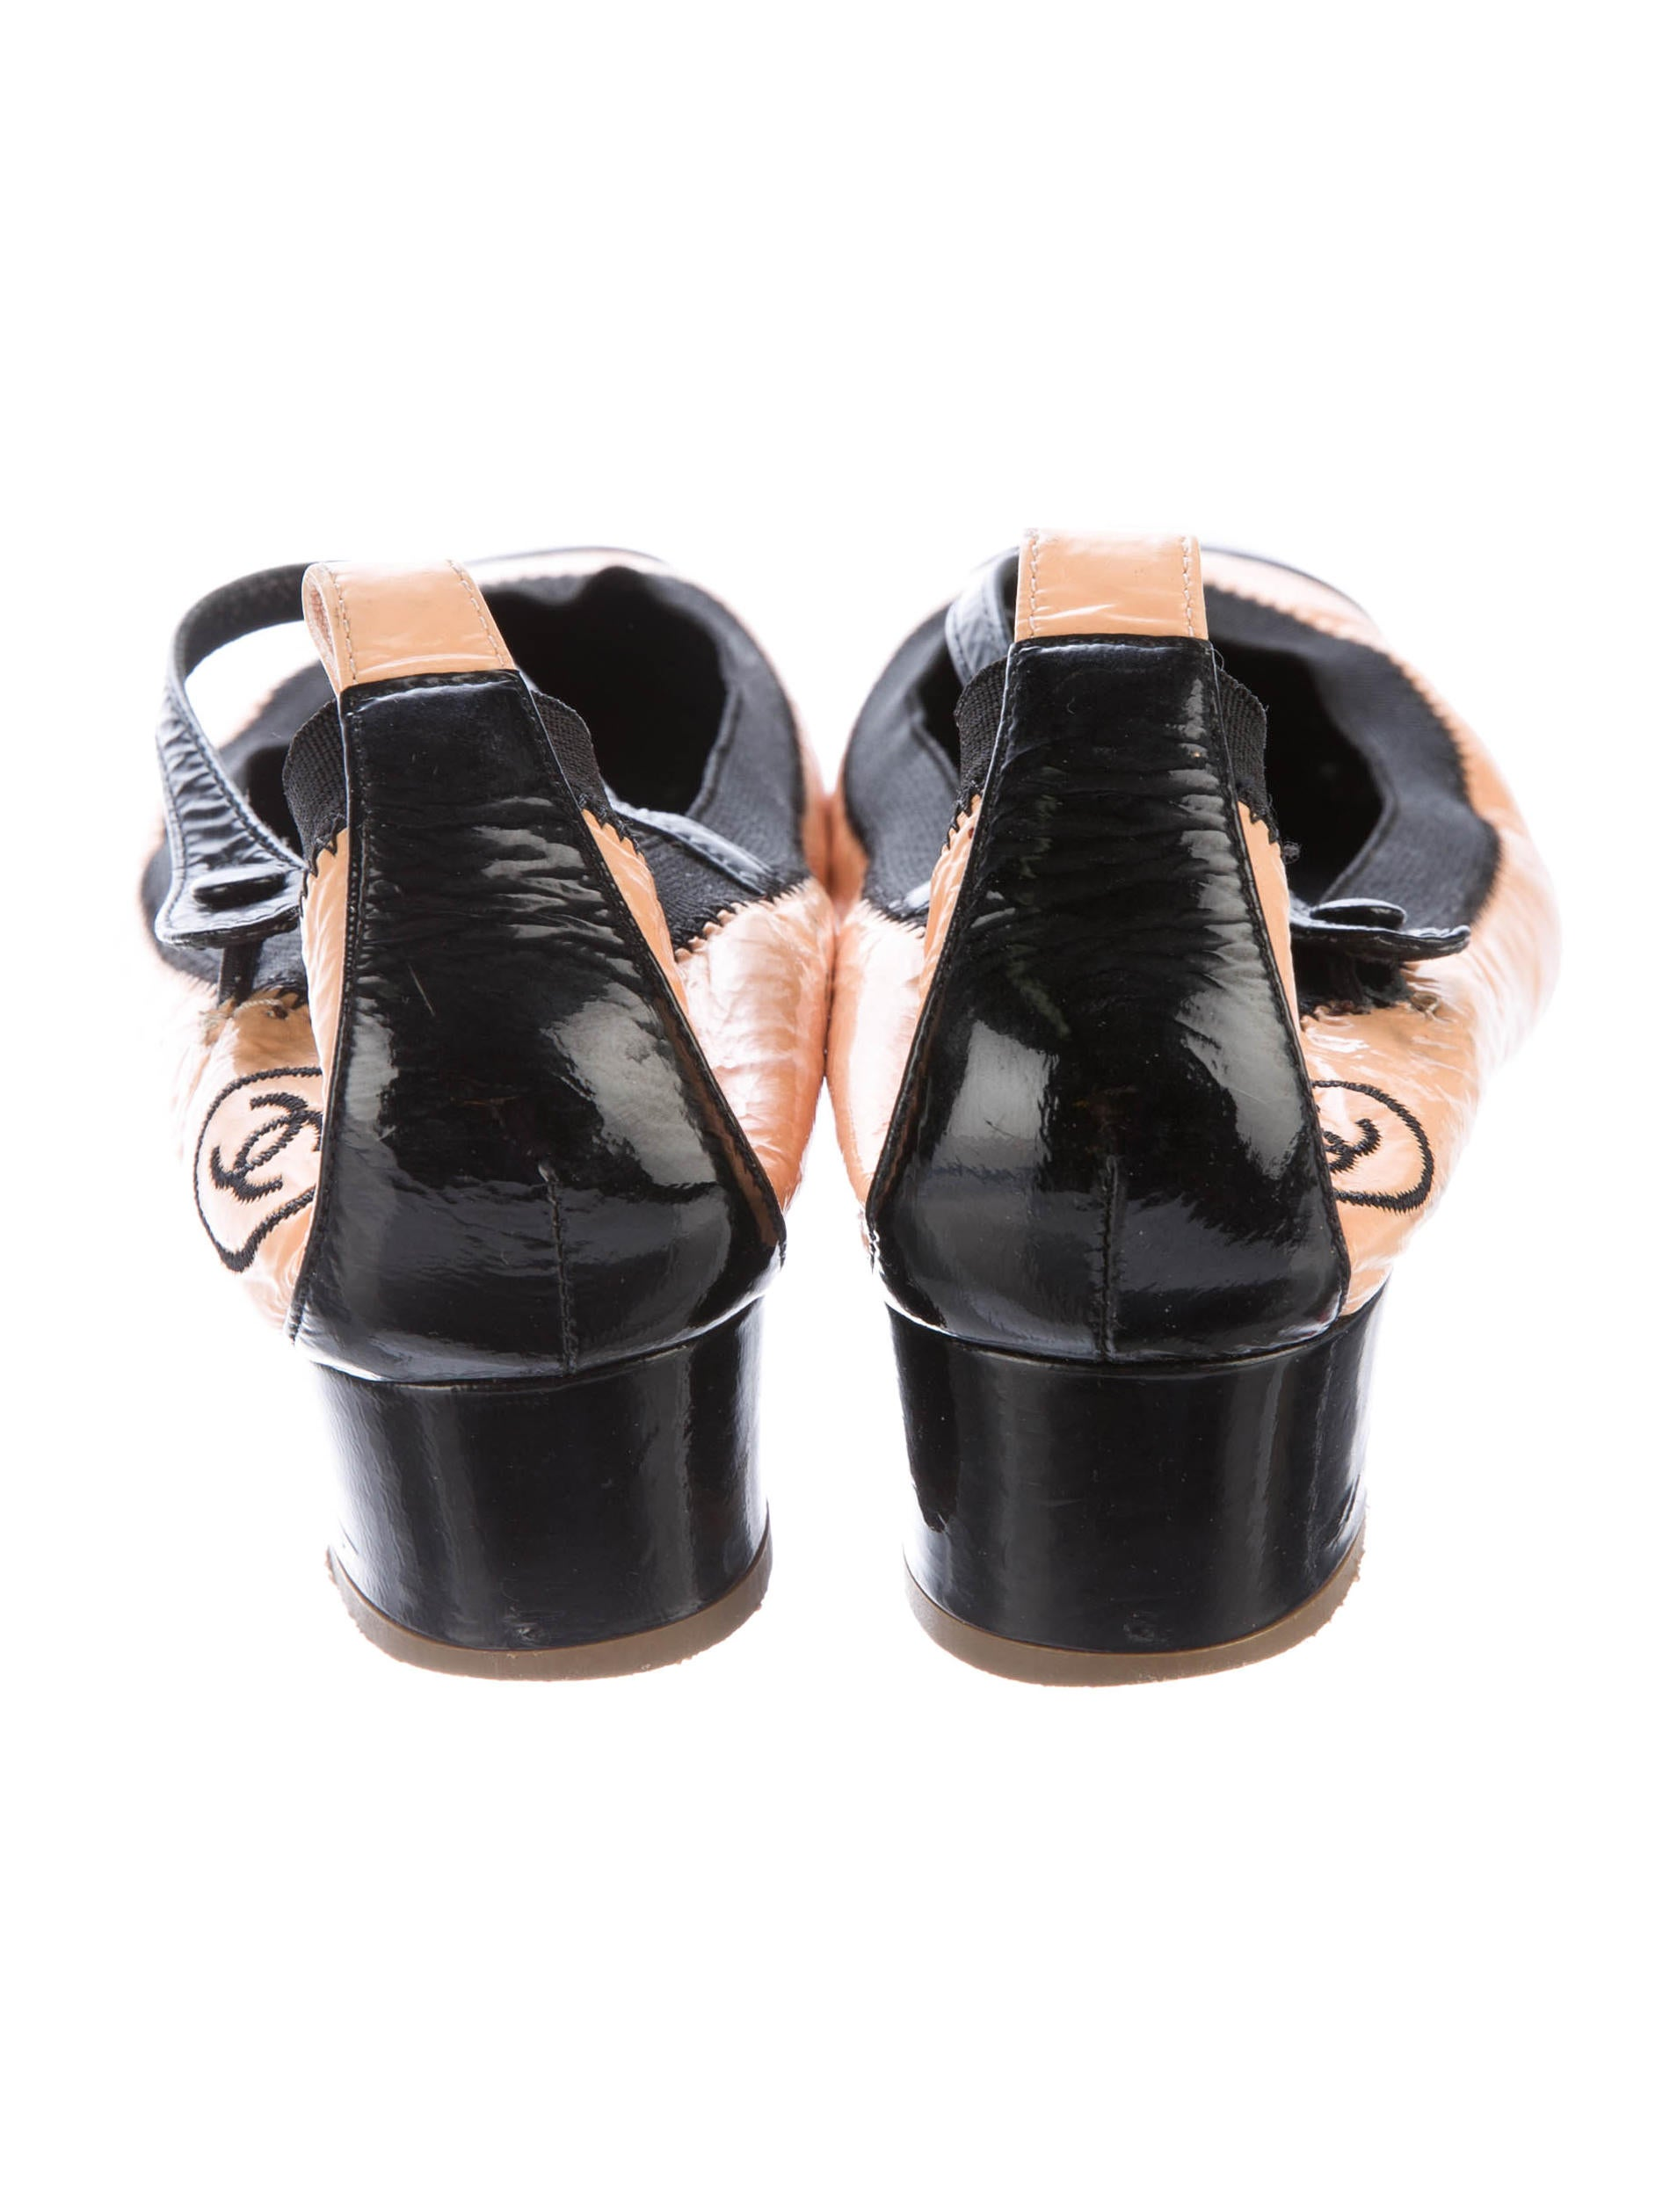 chanel stretch spirit patent leather pumps shoes